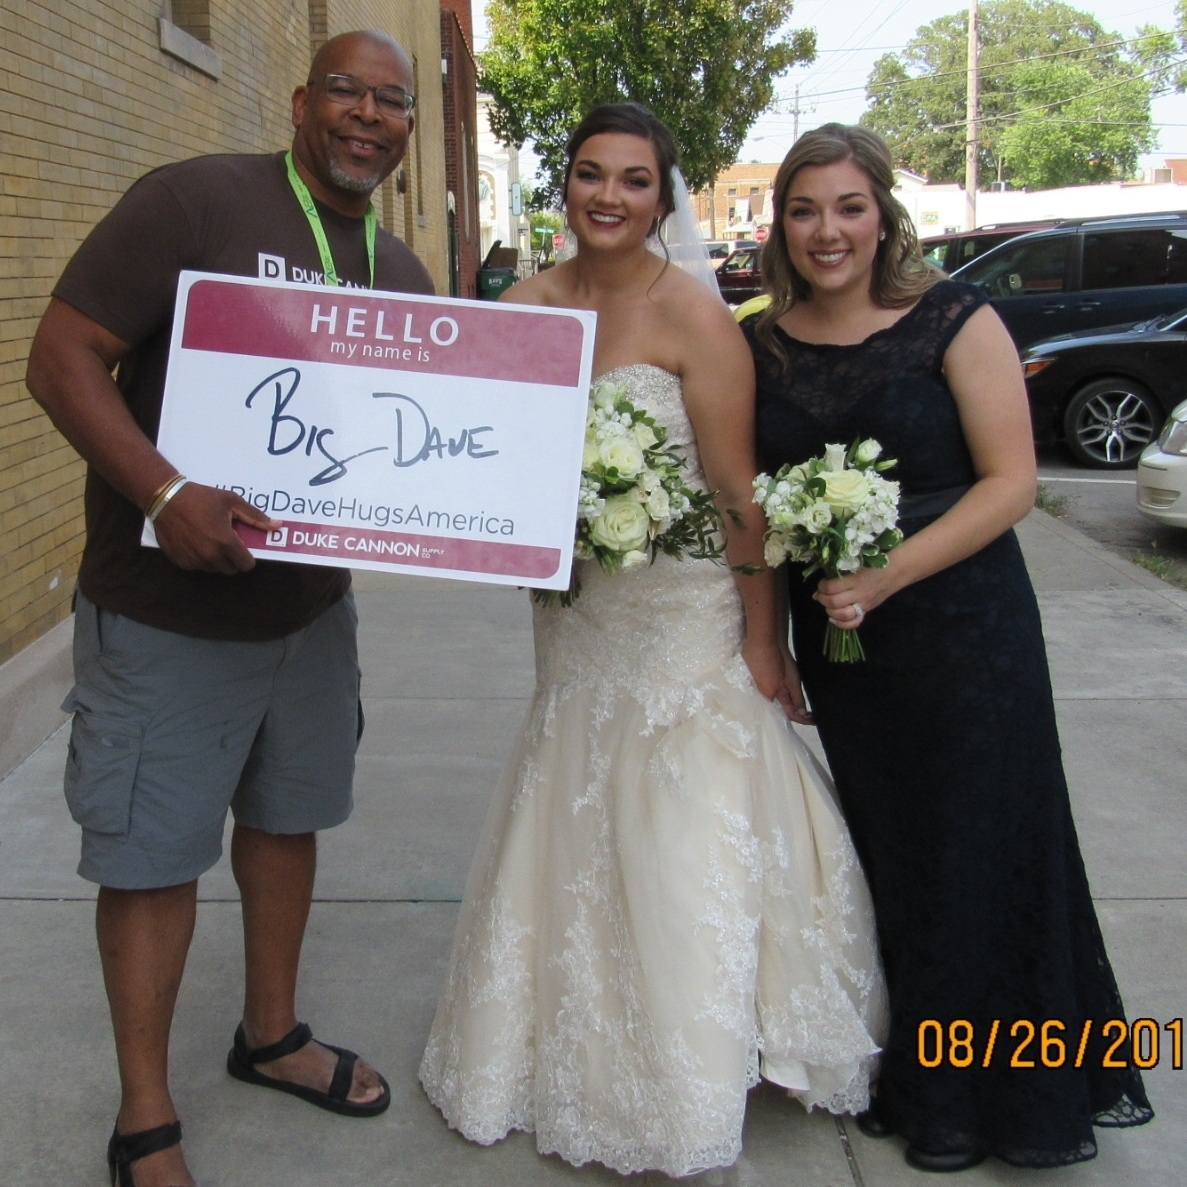 Indiana - In Indainaapolis, I ran up to this bride-to-be and said,